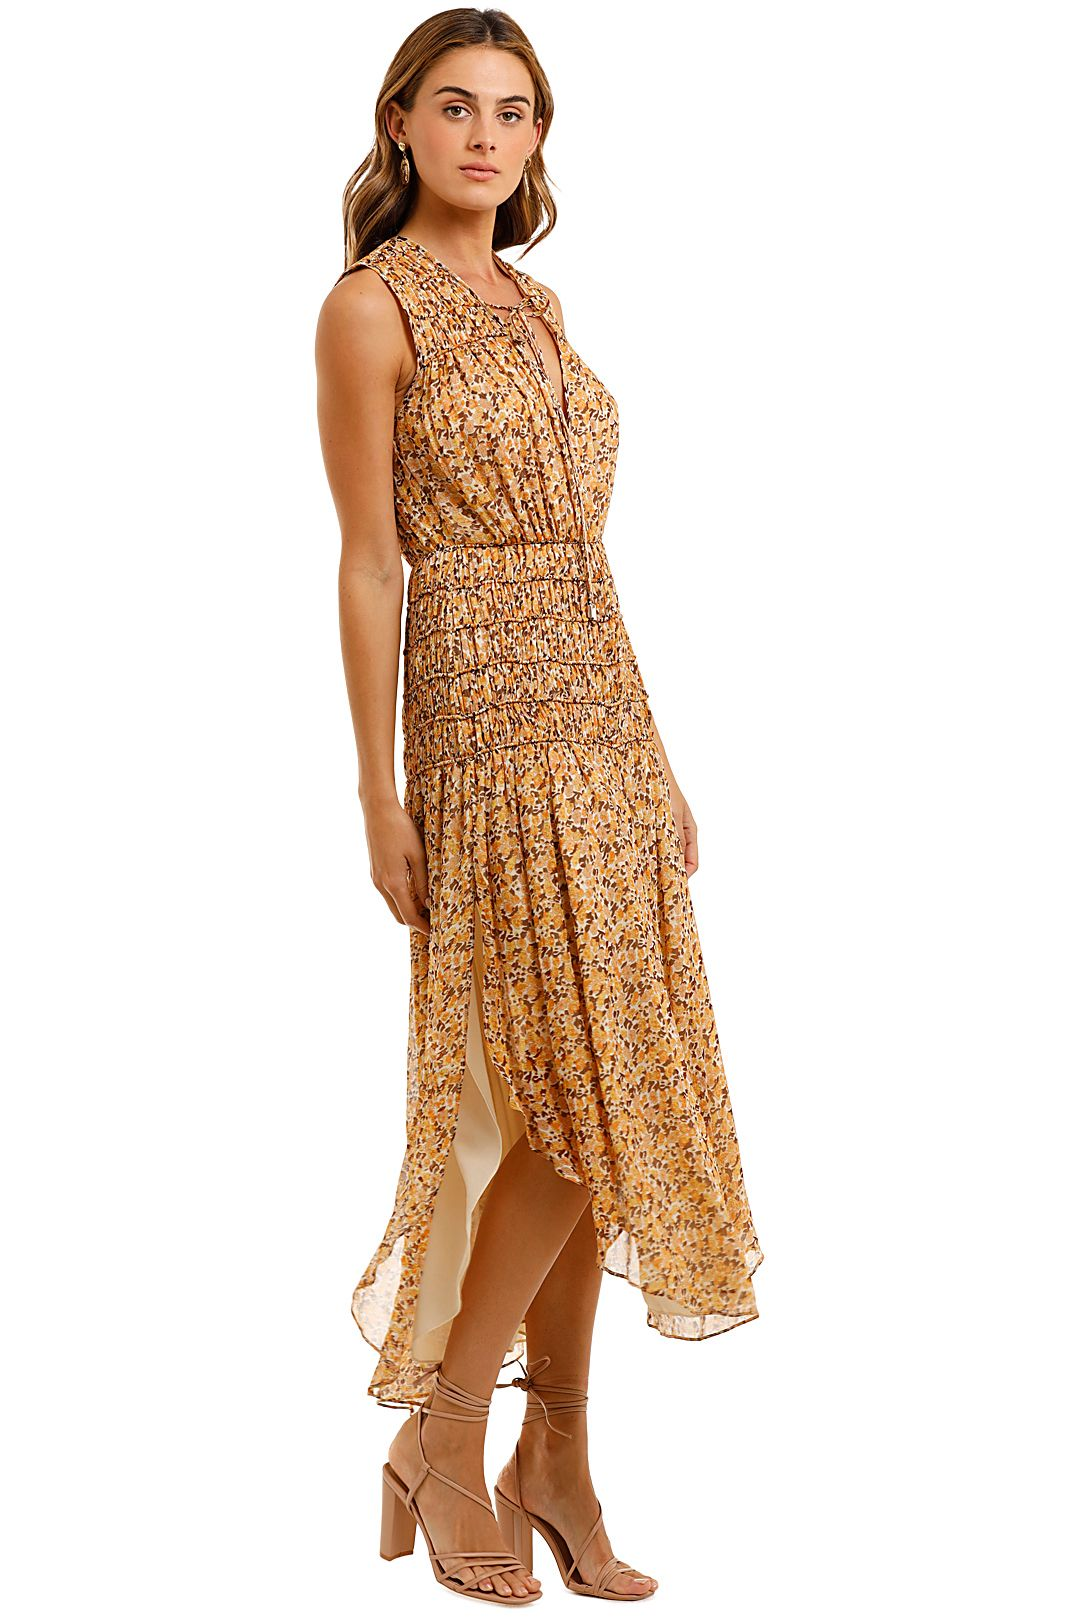 Shona Joy Sleeveless Corded Midi Dress Hi Low